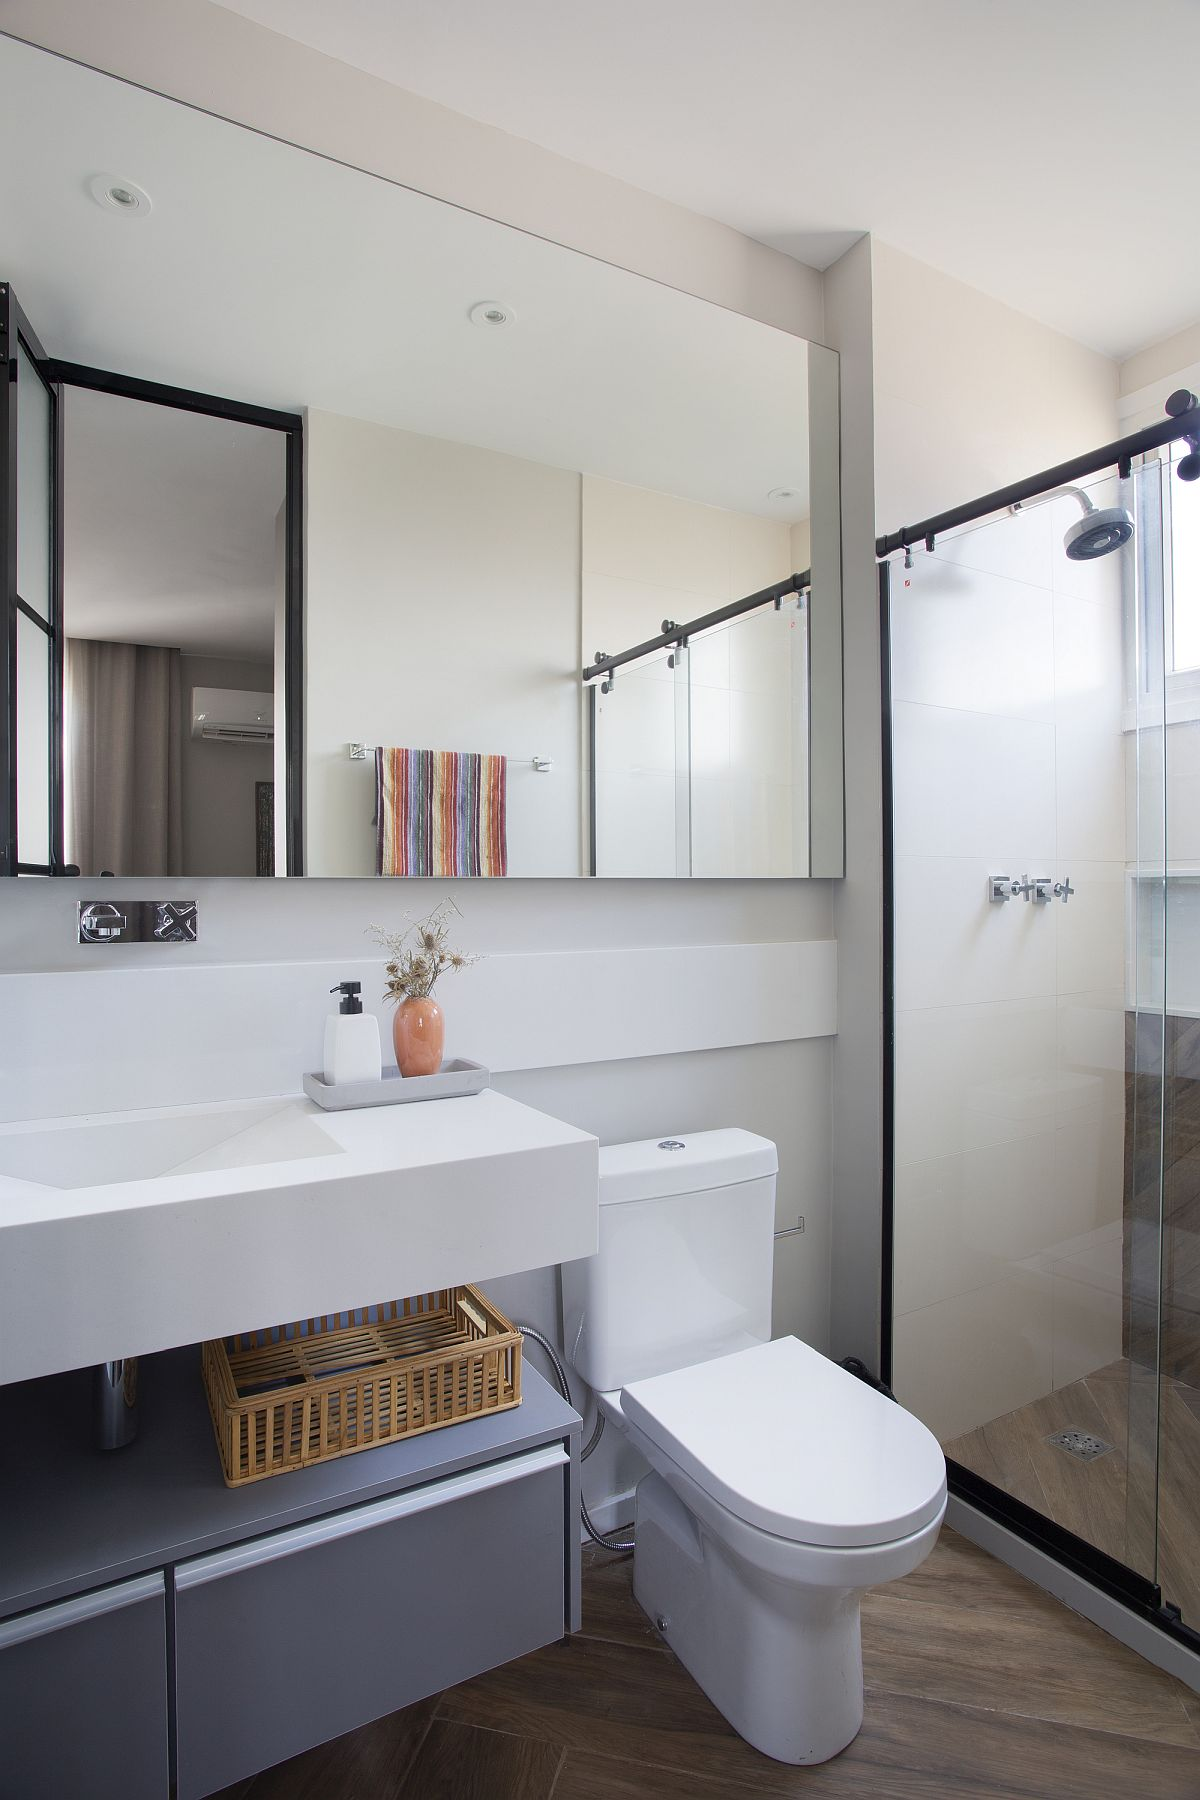 Wooden flooring coupled with gray and white touches in the small modern bathroom